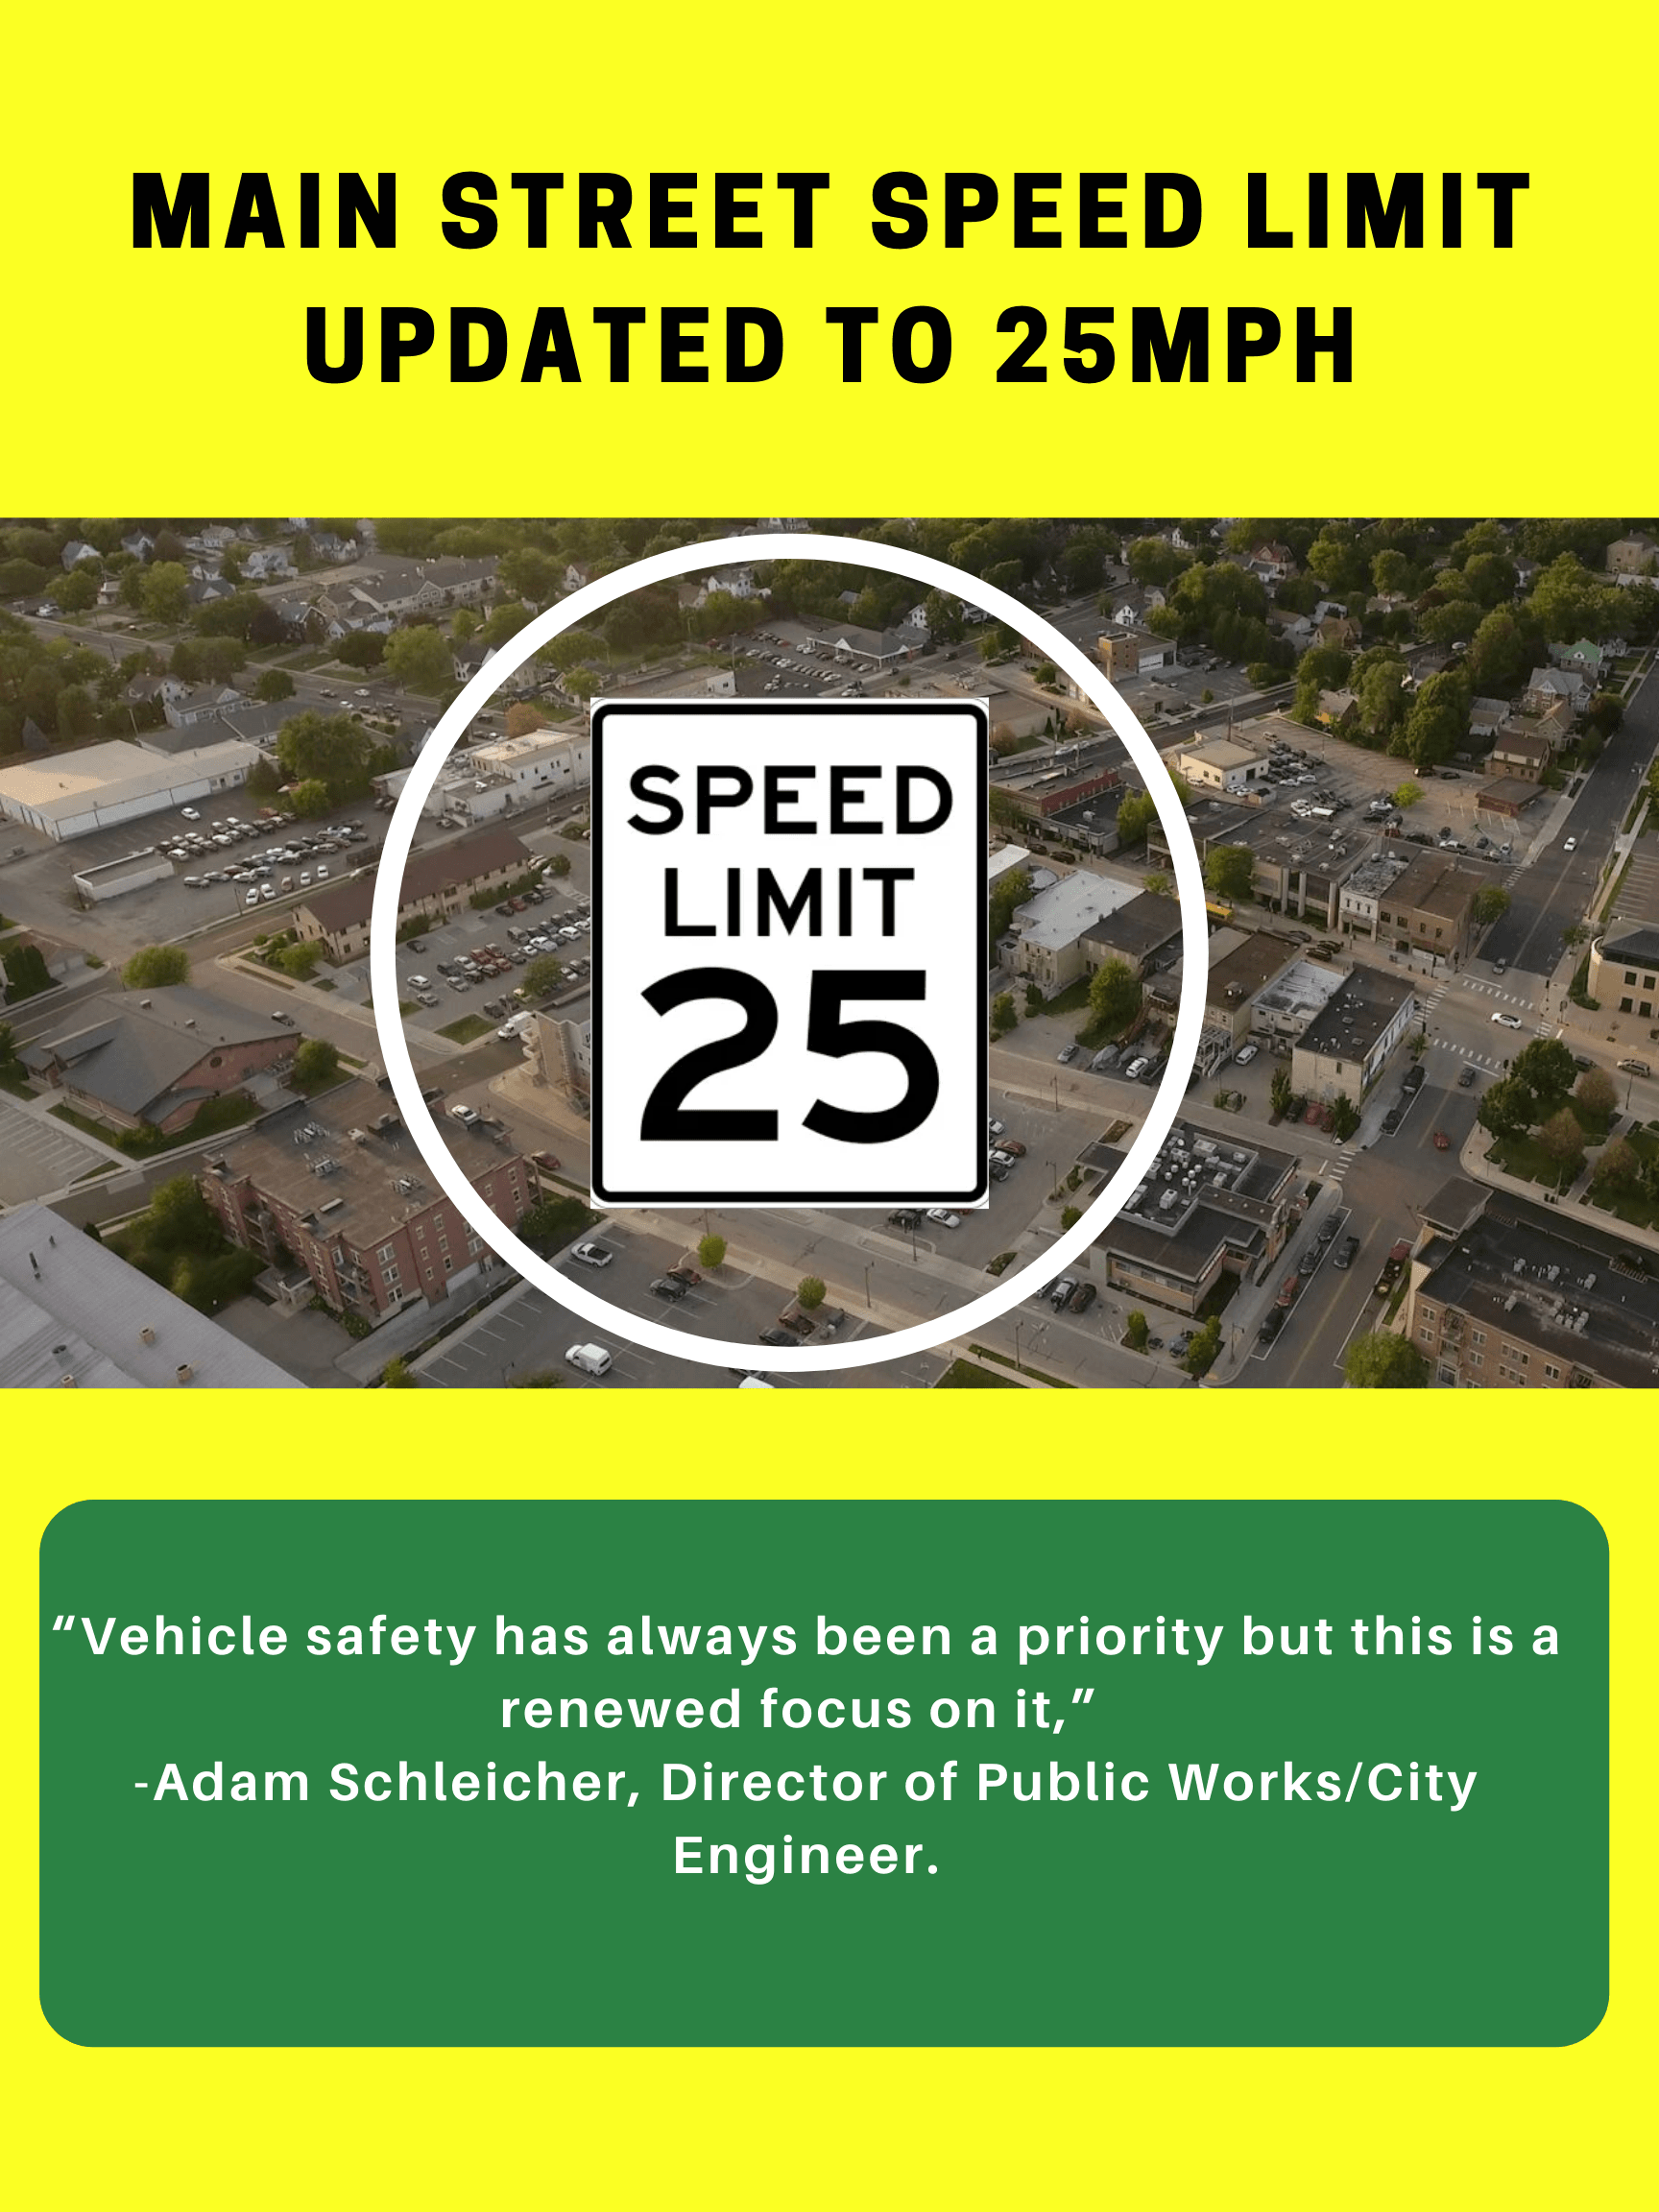 updated speed limit on main street